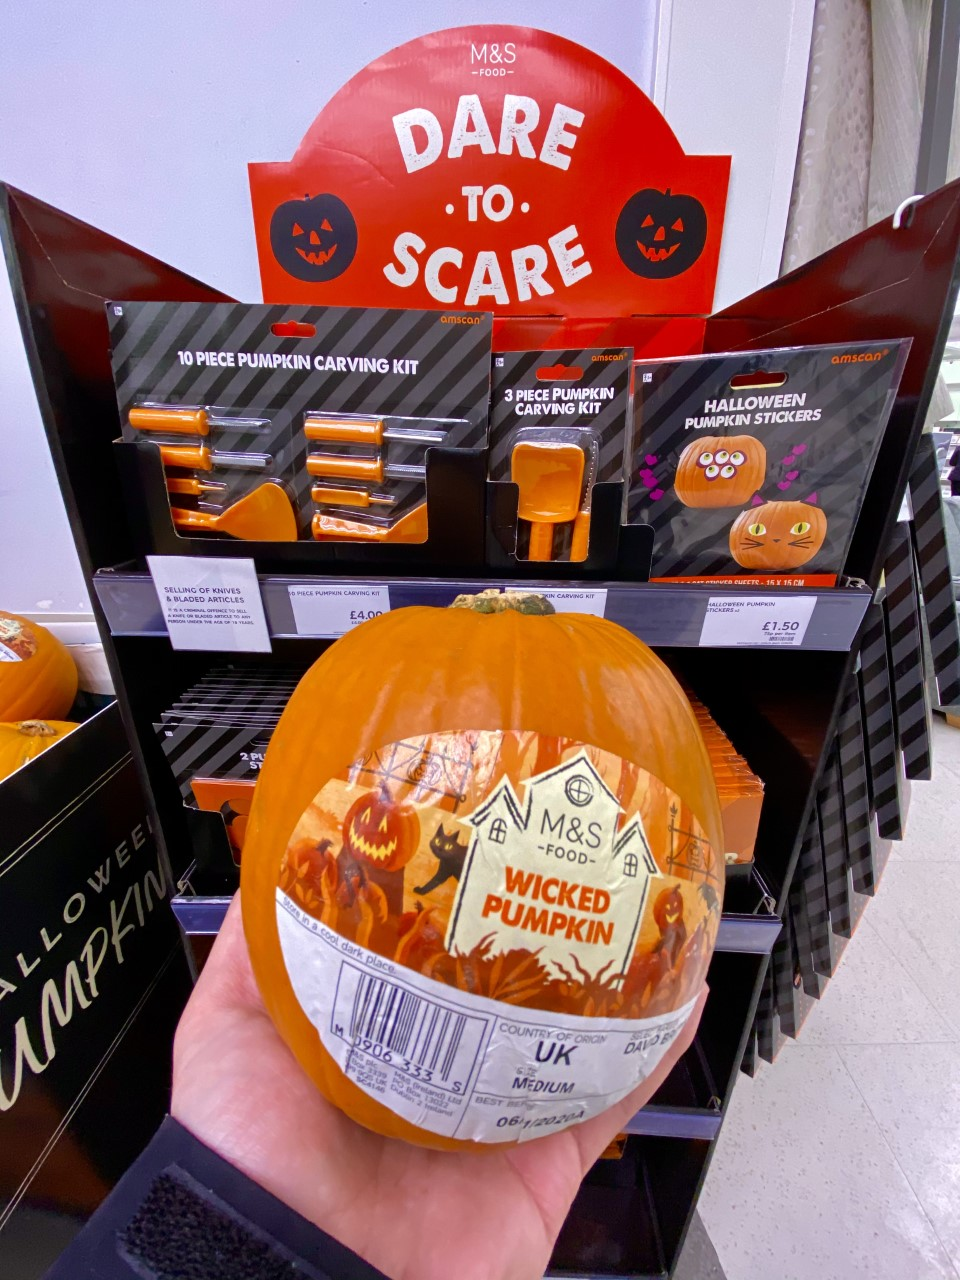 Wicked Pumpkin - Marks & Spencer